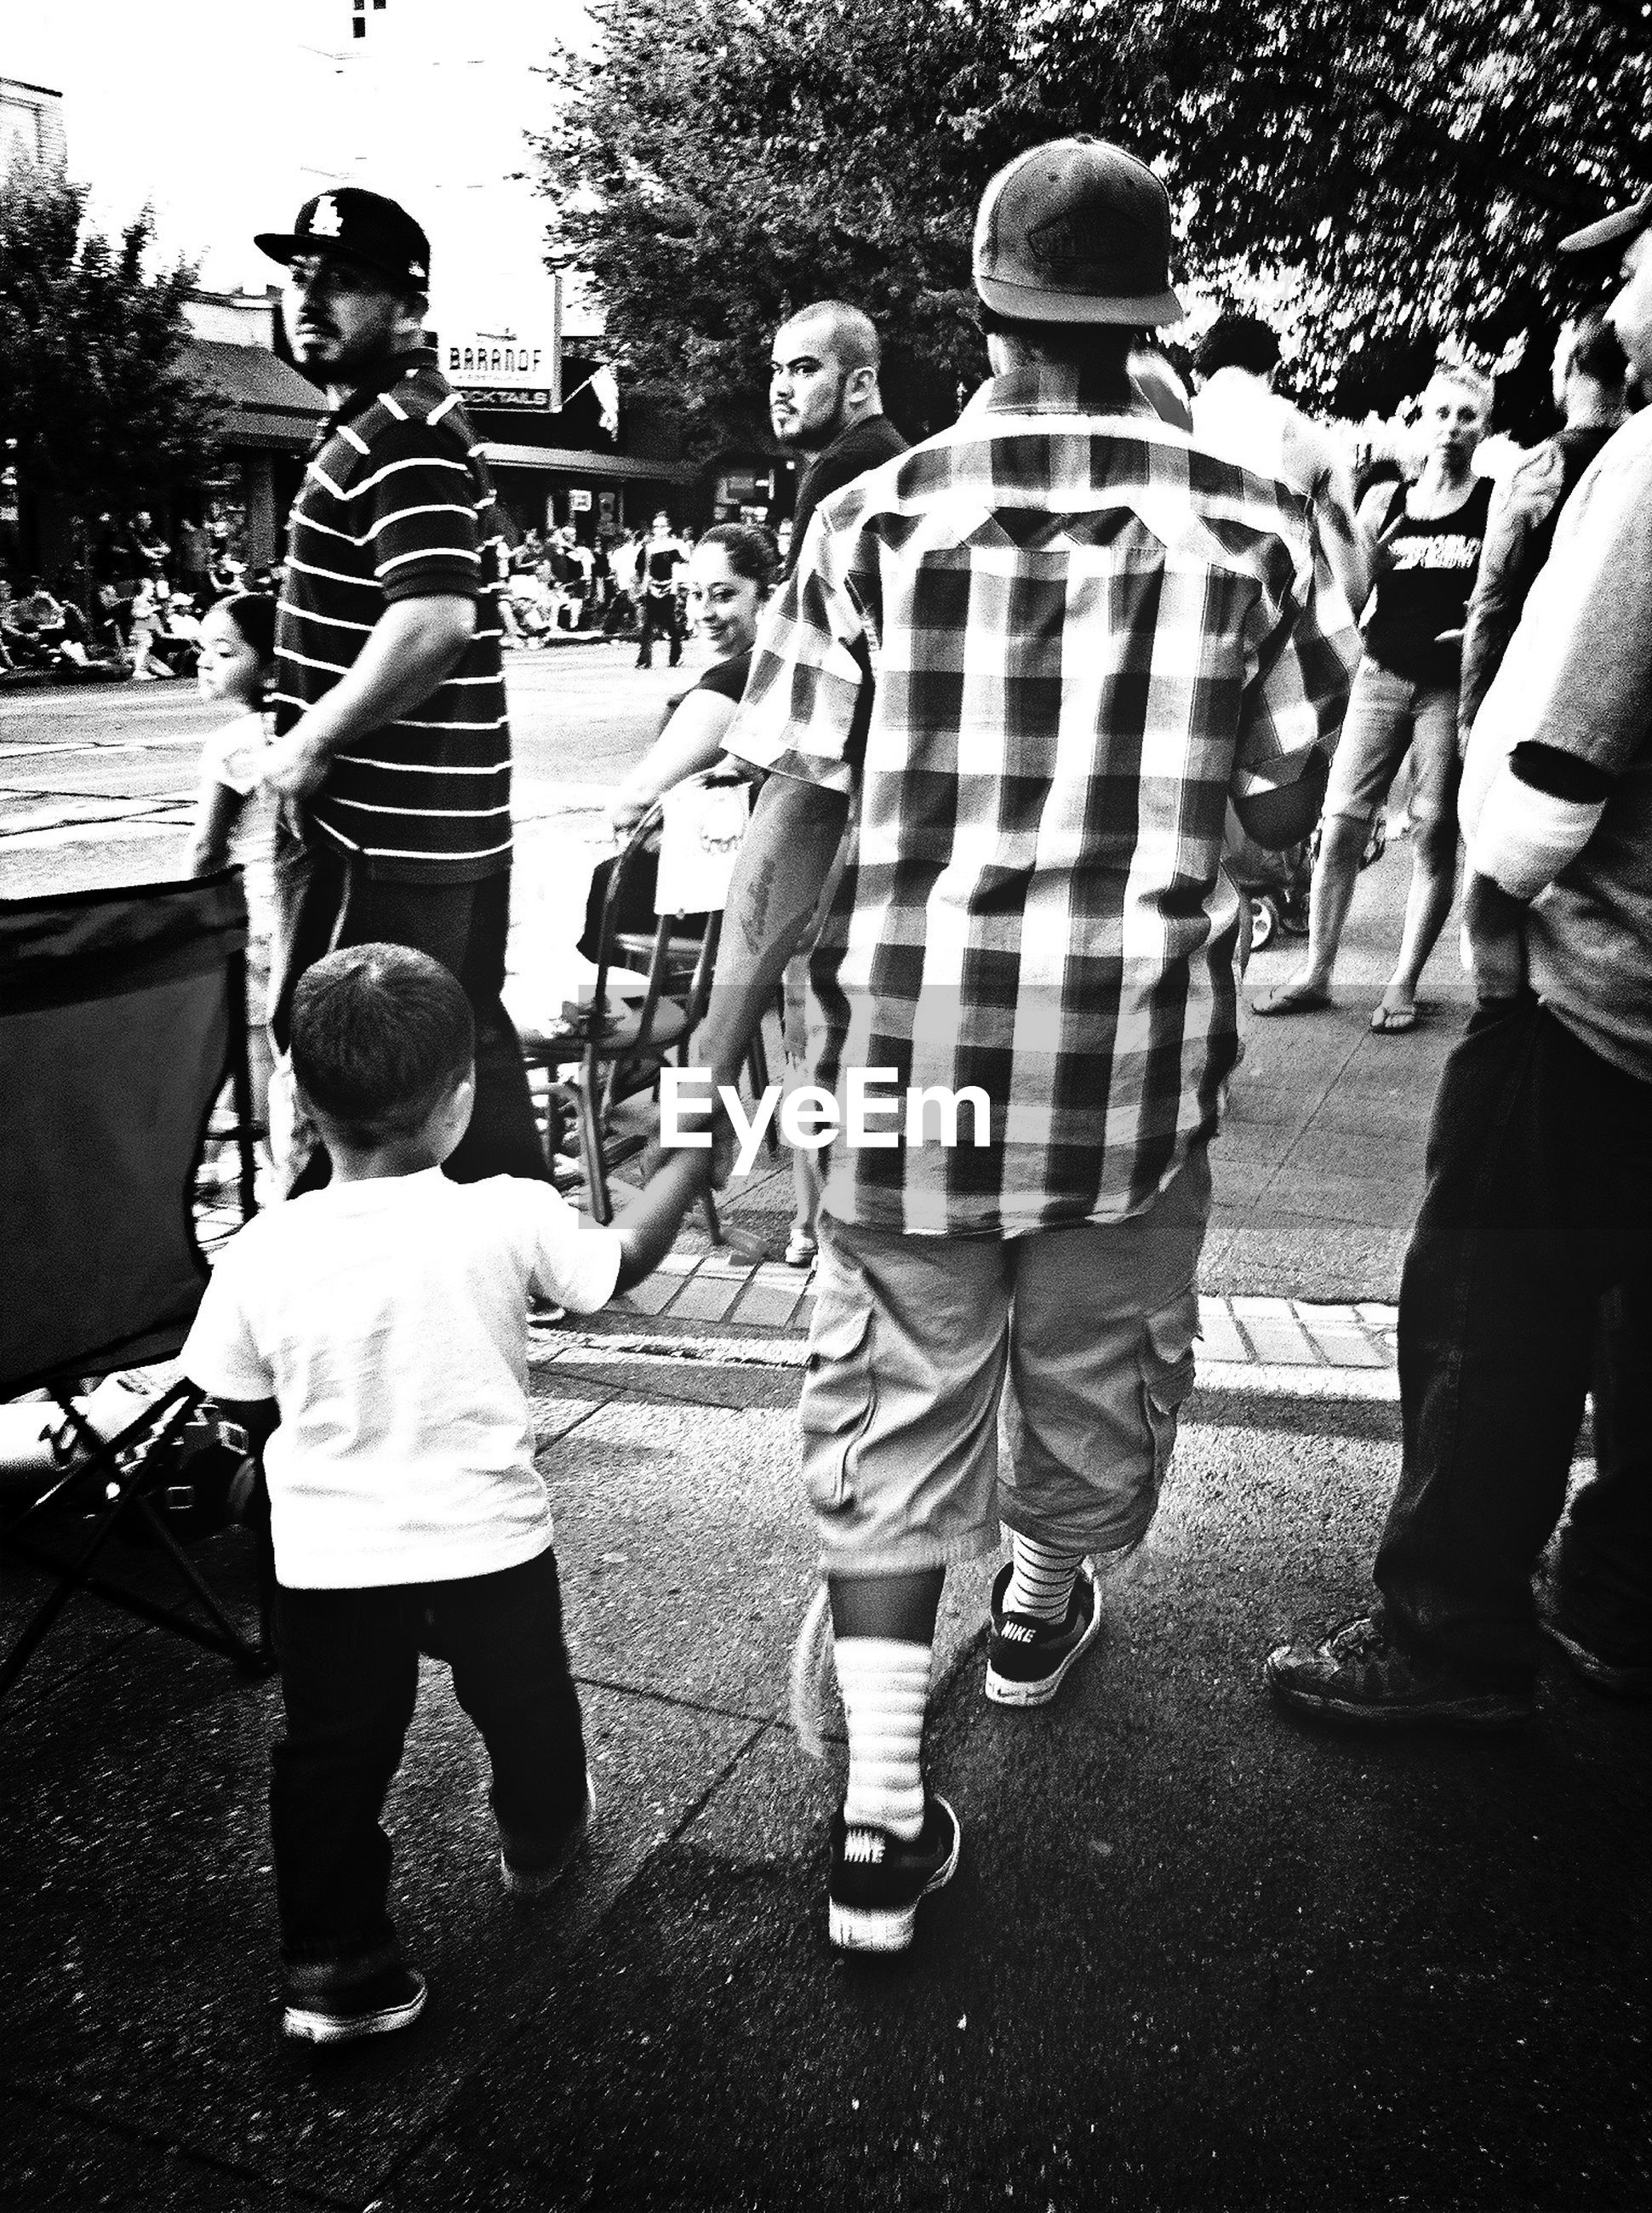 full length, childhood, rear view, lifestyles, casual clothing, togetherness, girls, boys, leisure activity, walking, elementary age, men, standing, bonding, love, park - man made space, person, street